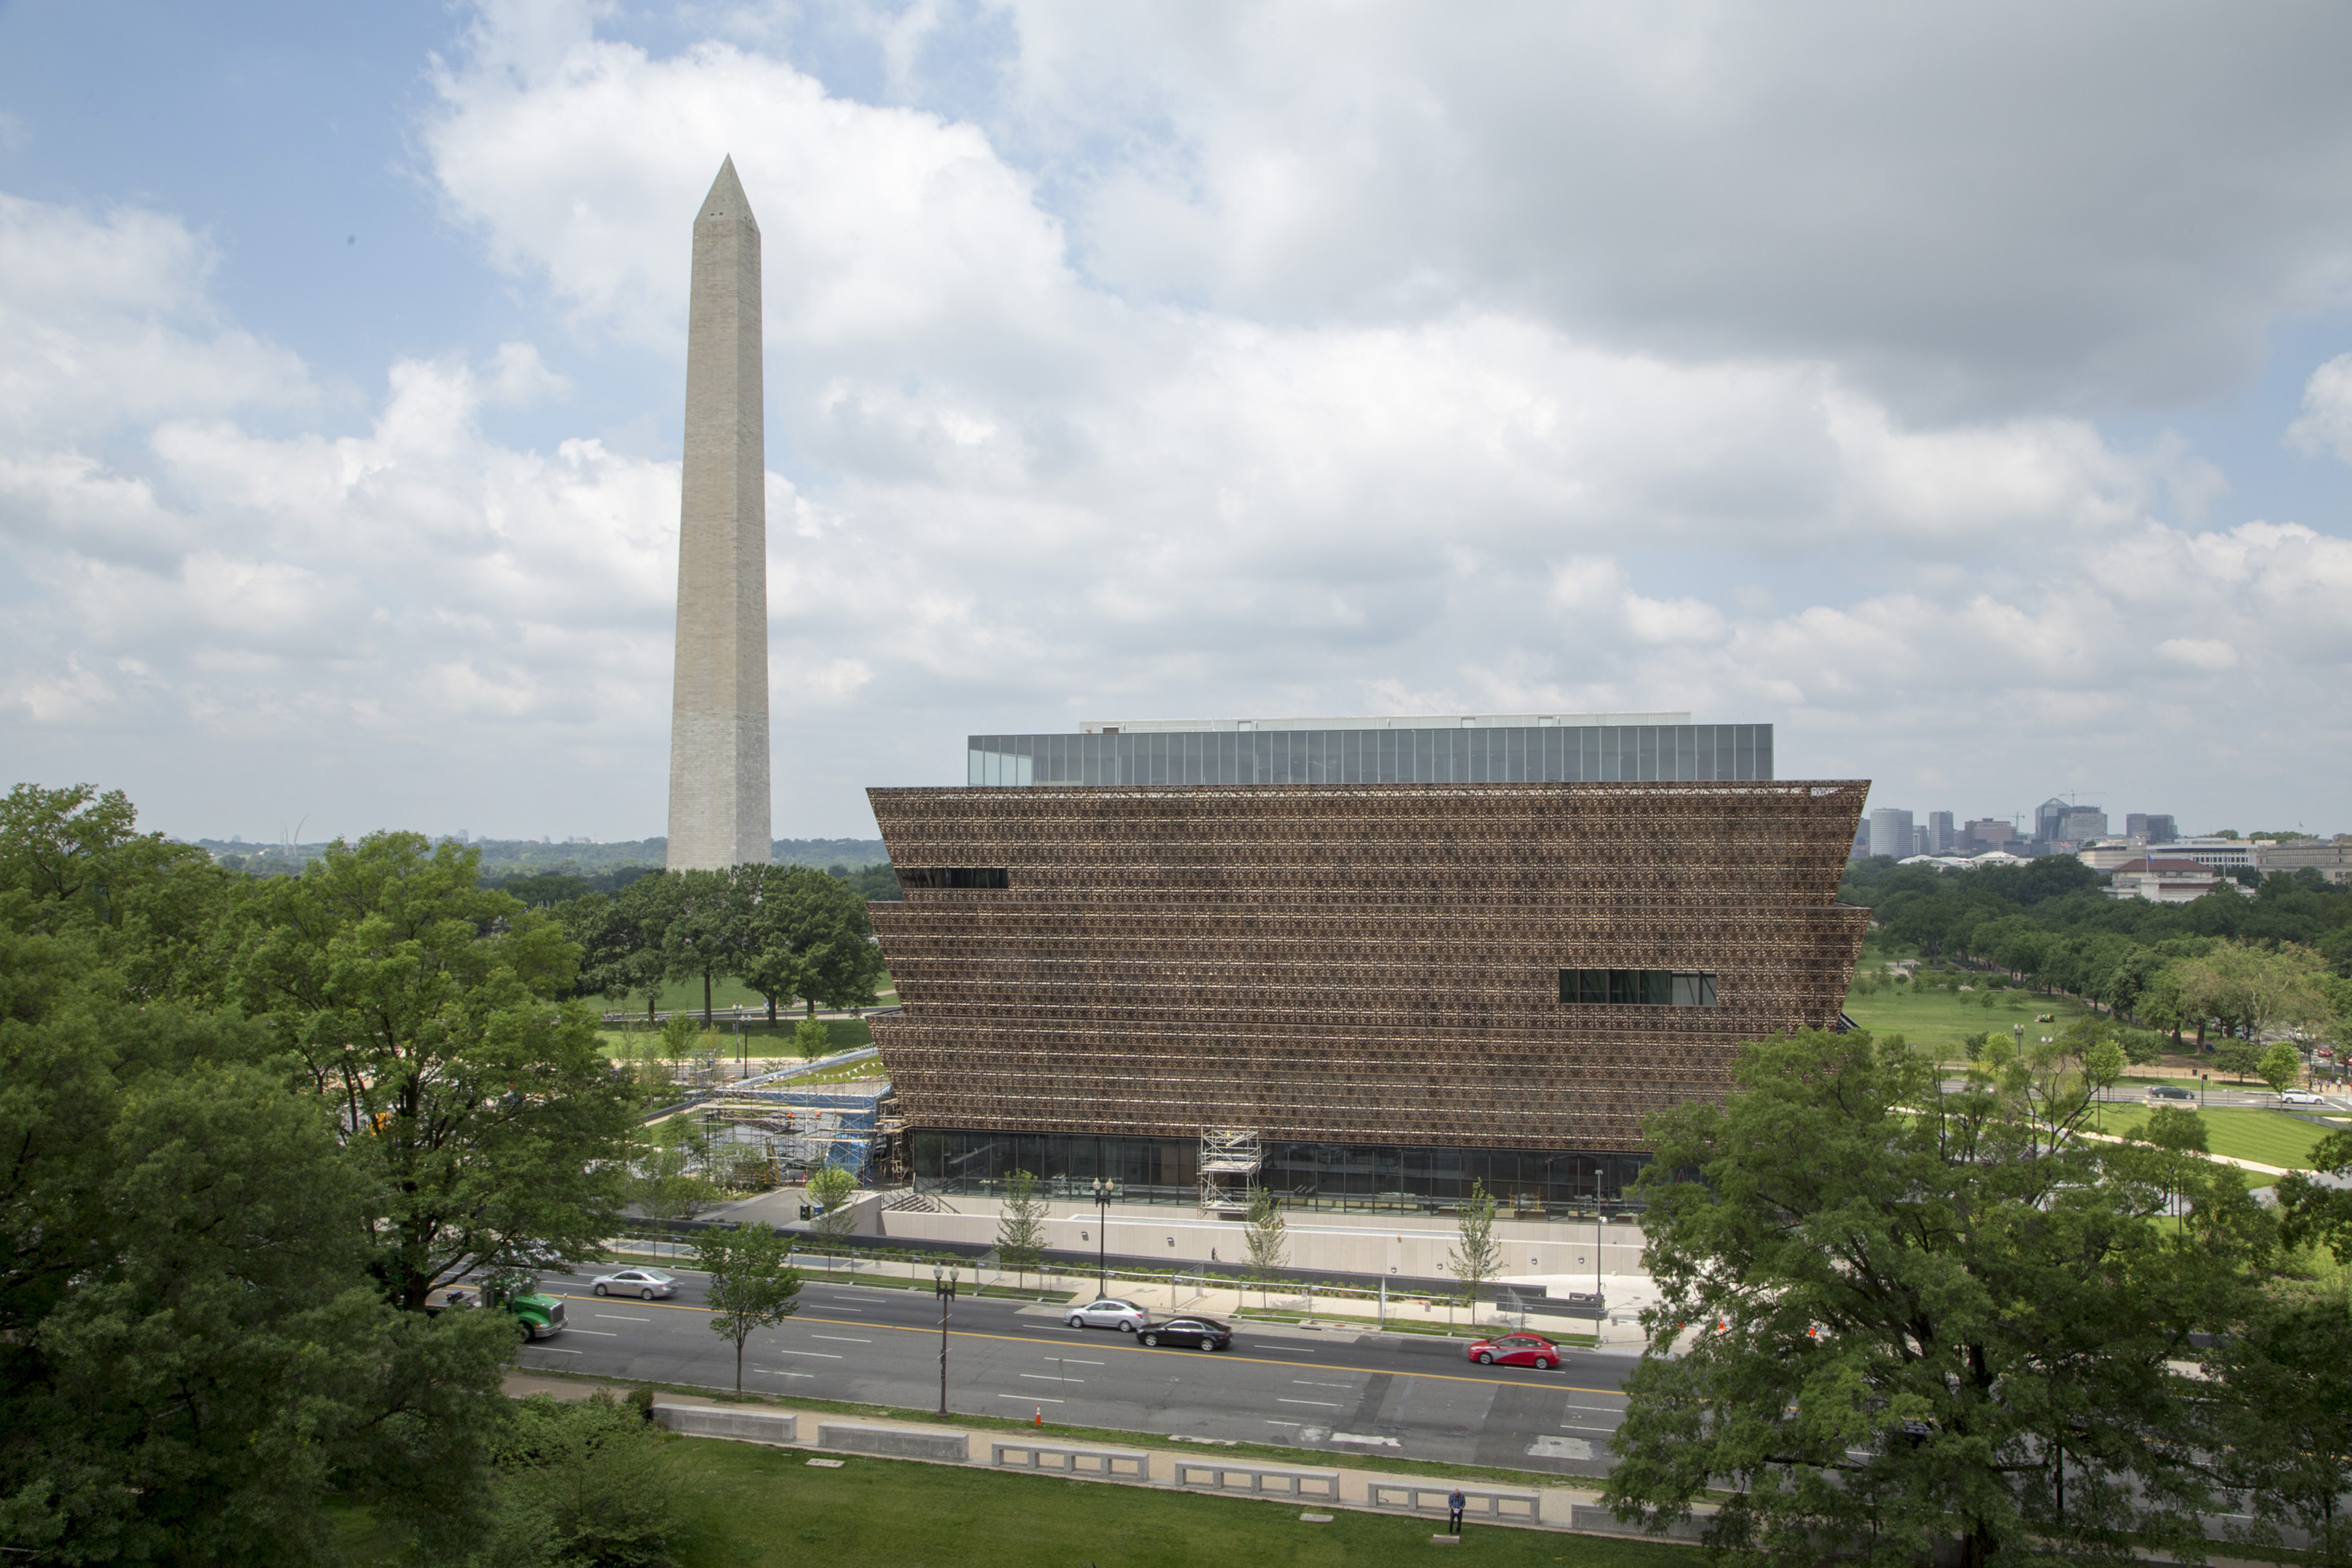 Aerial view of Washington Monument, with NMAAHC